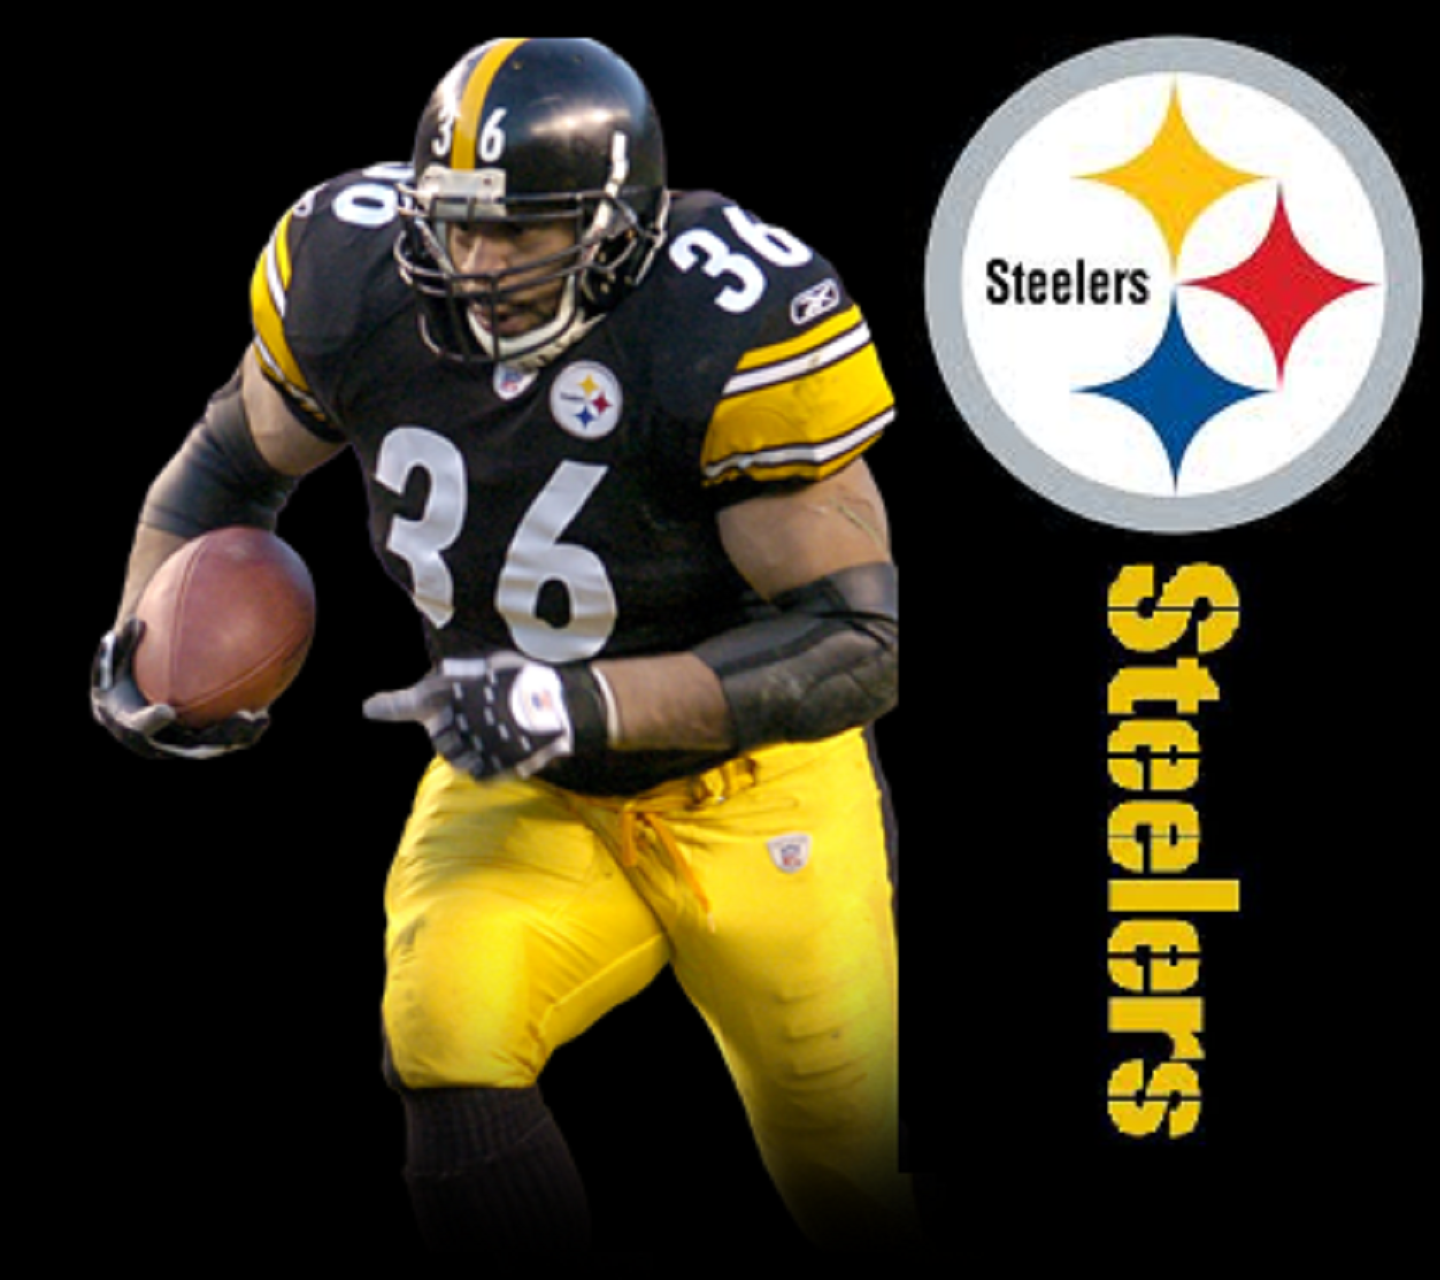 Steelers Jerome Bettis Wallpaper phone wallpaper by lazerpost 1440x1280